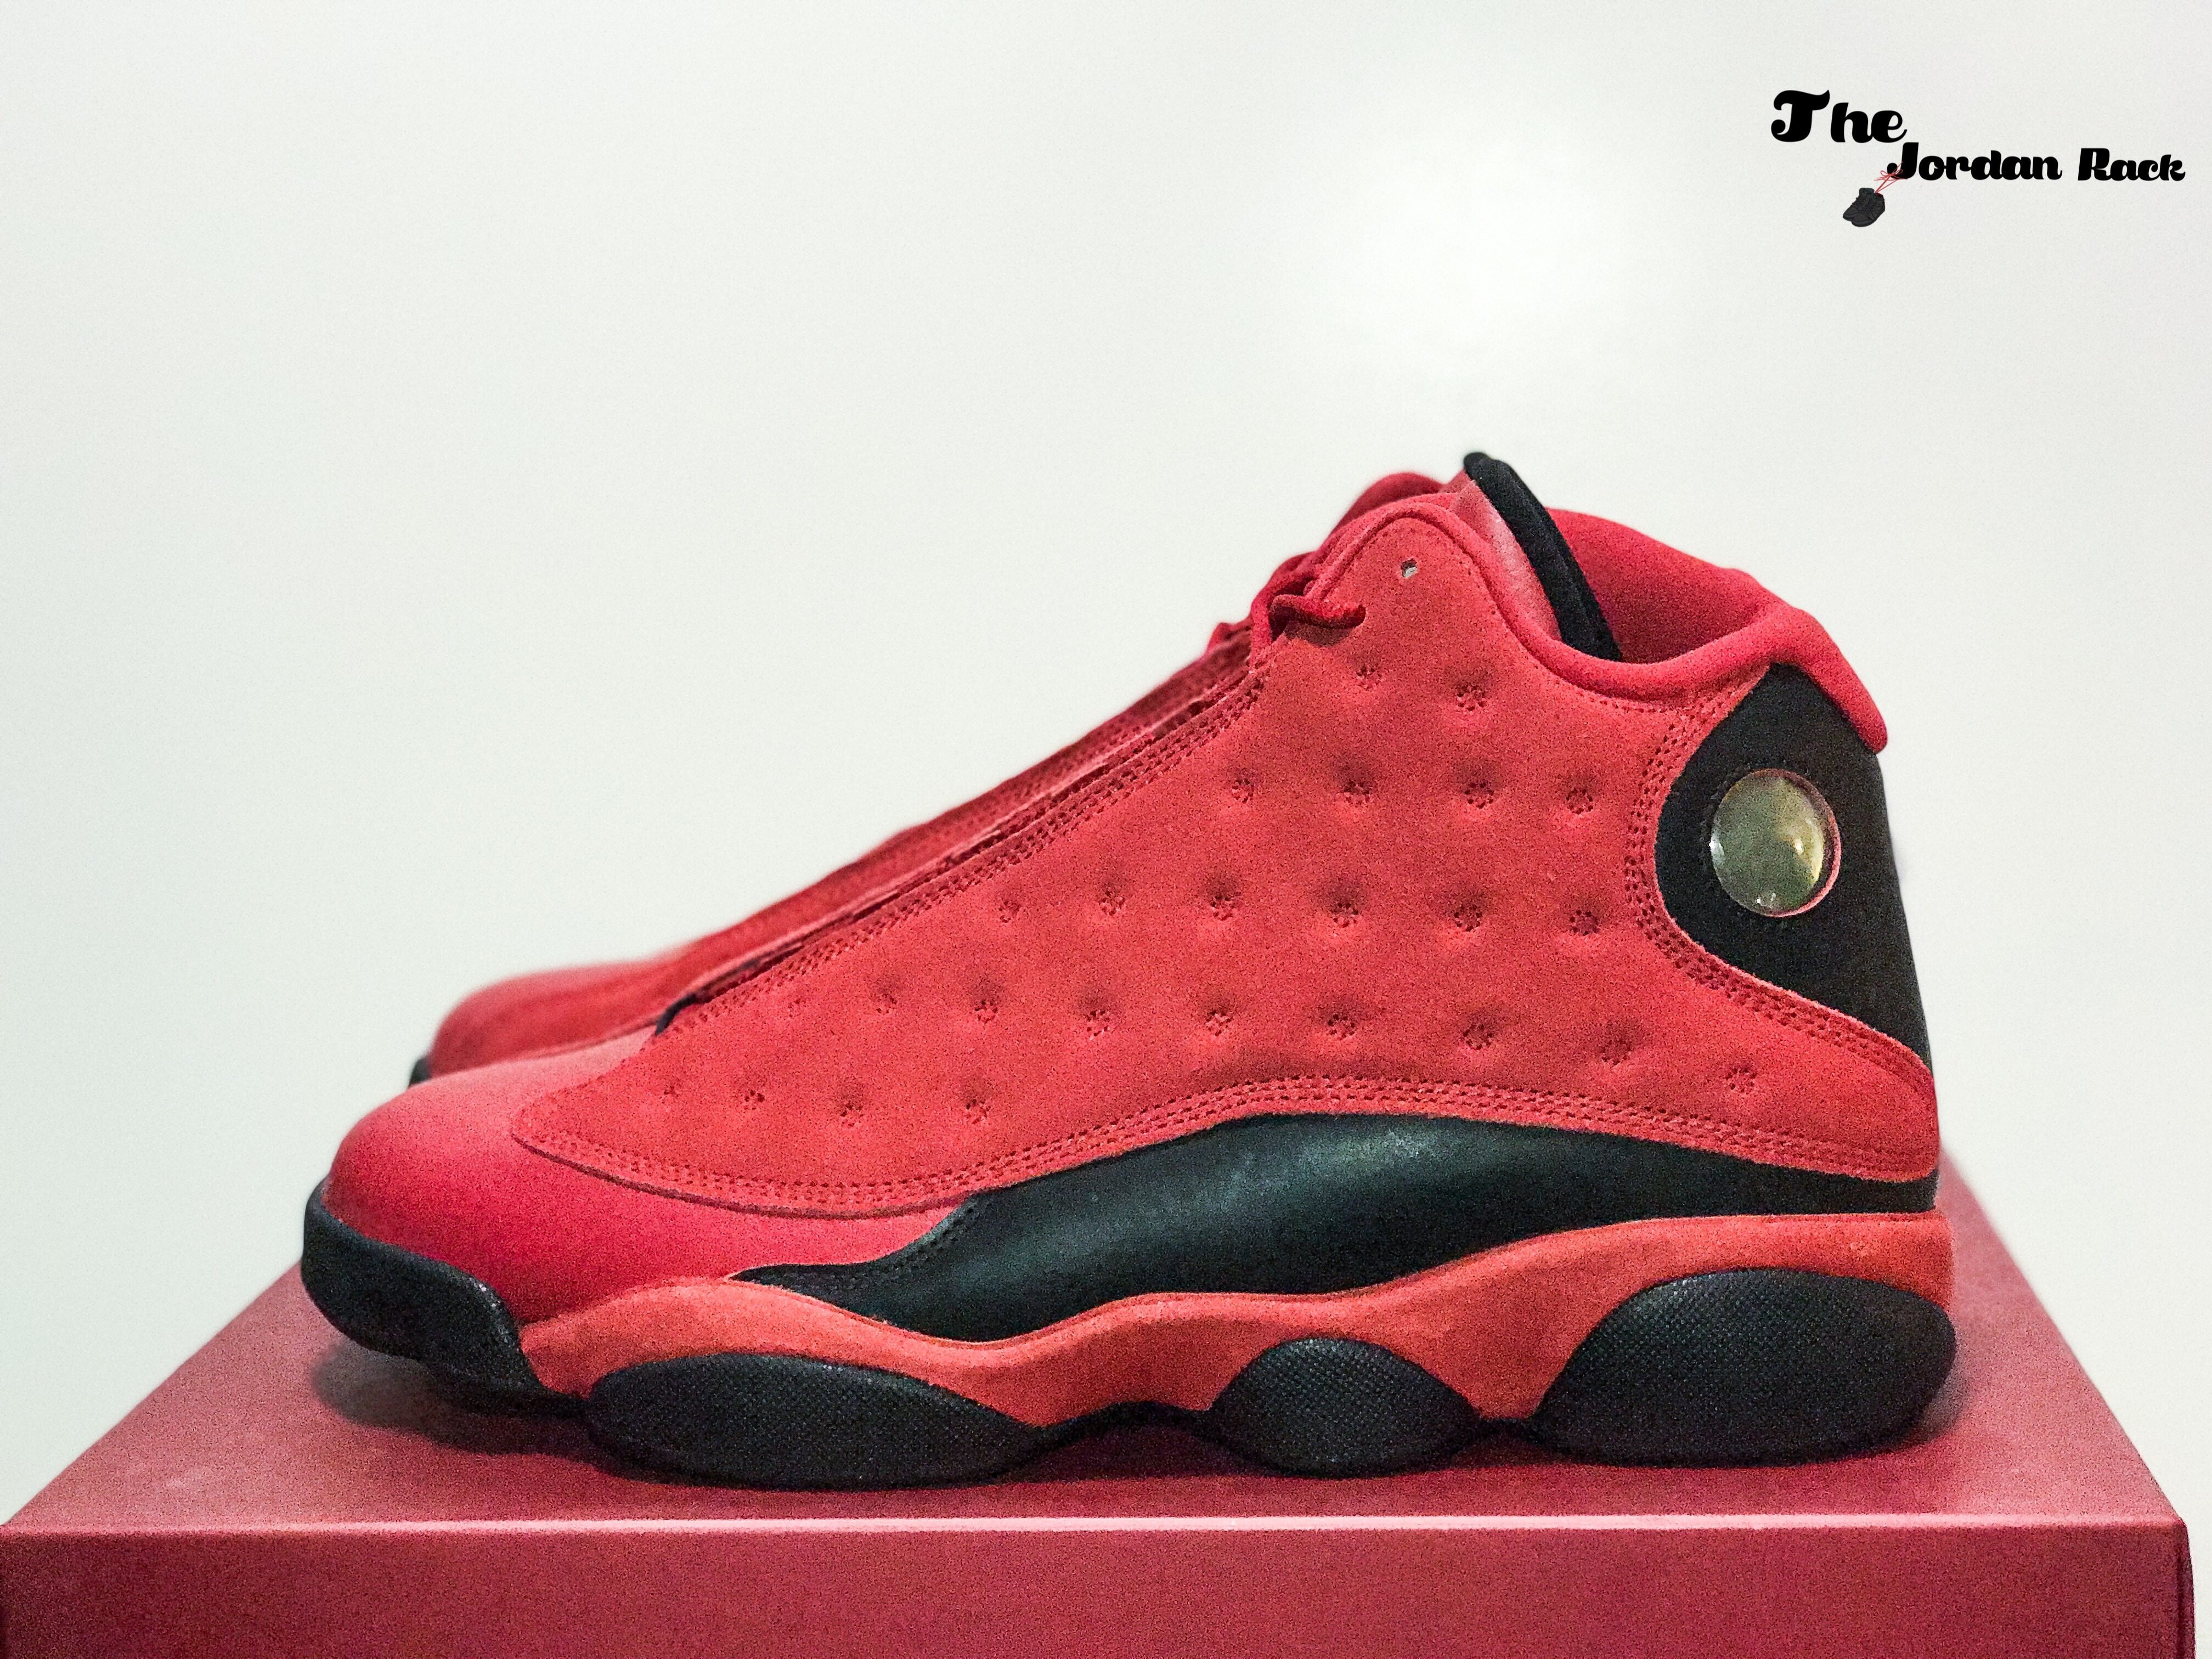 san francisco 15a0f d7d7d Air Jordan Retro 13